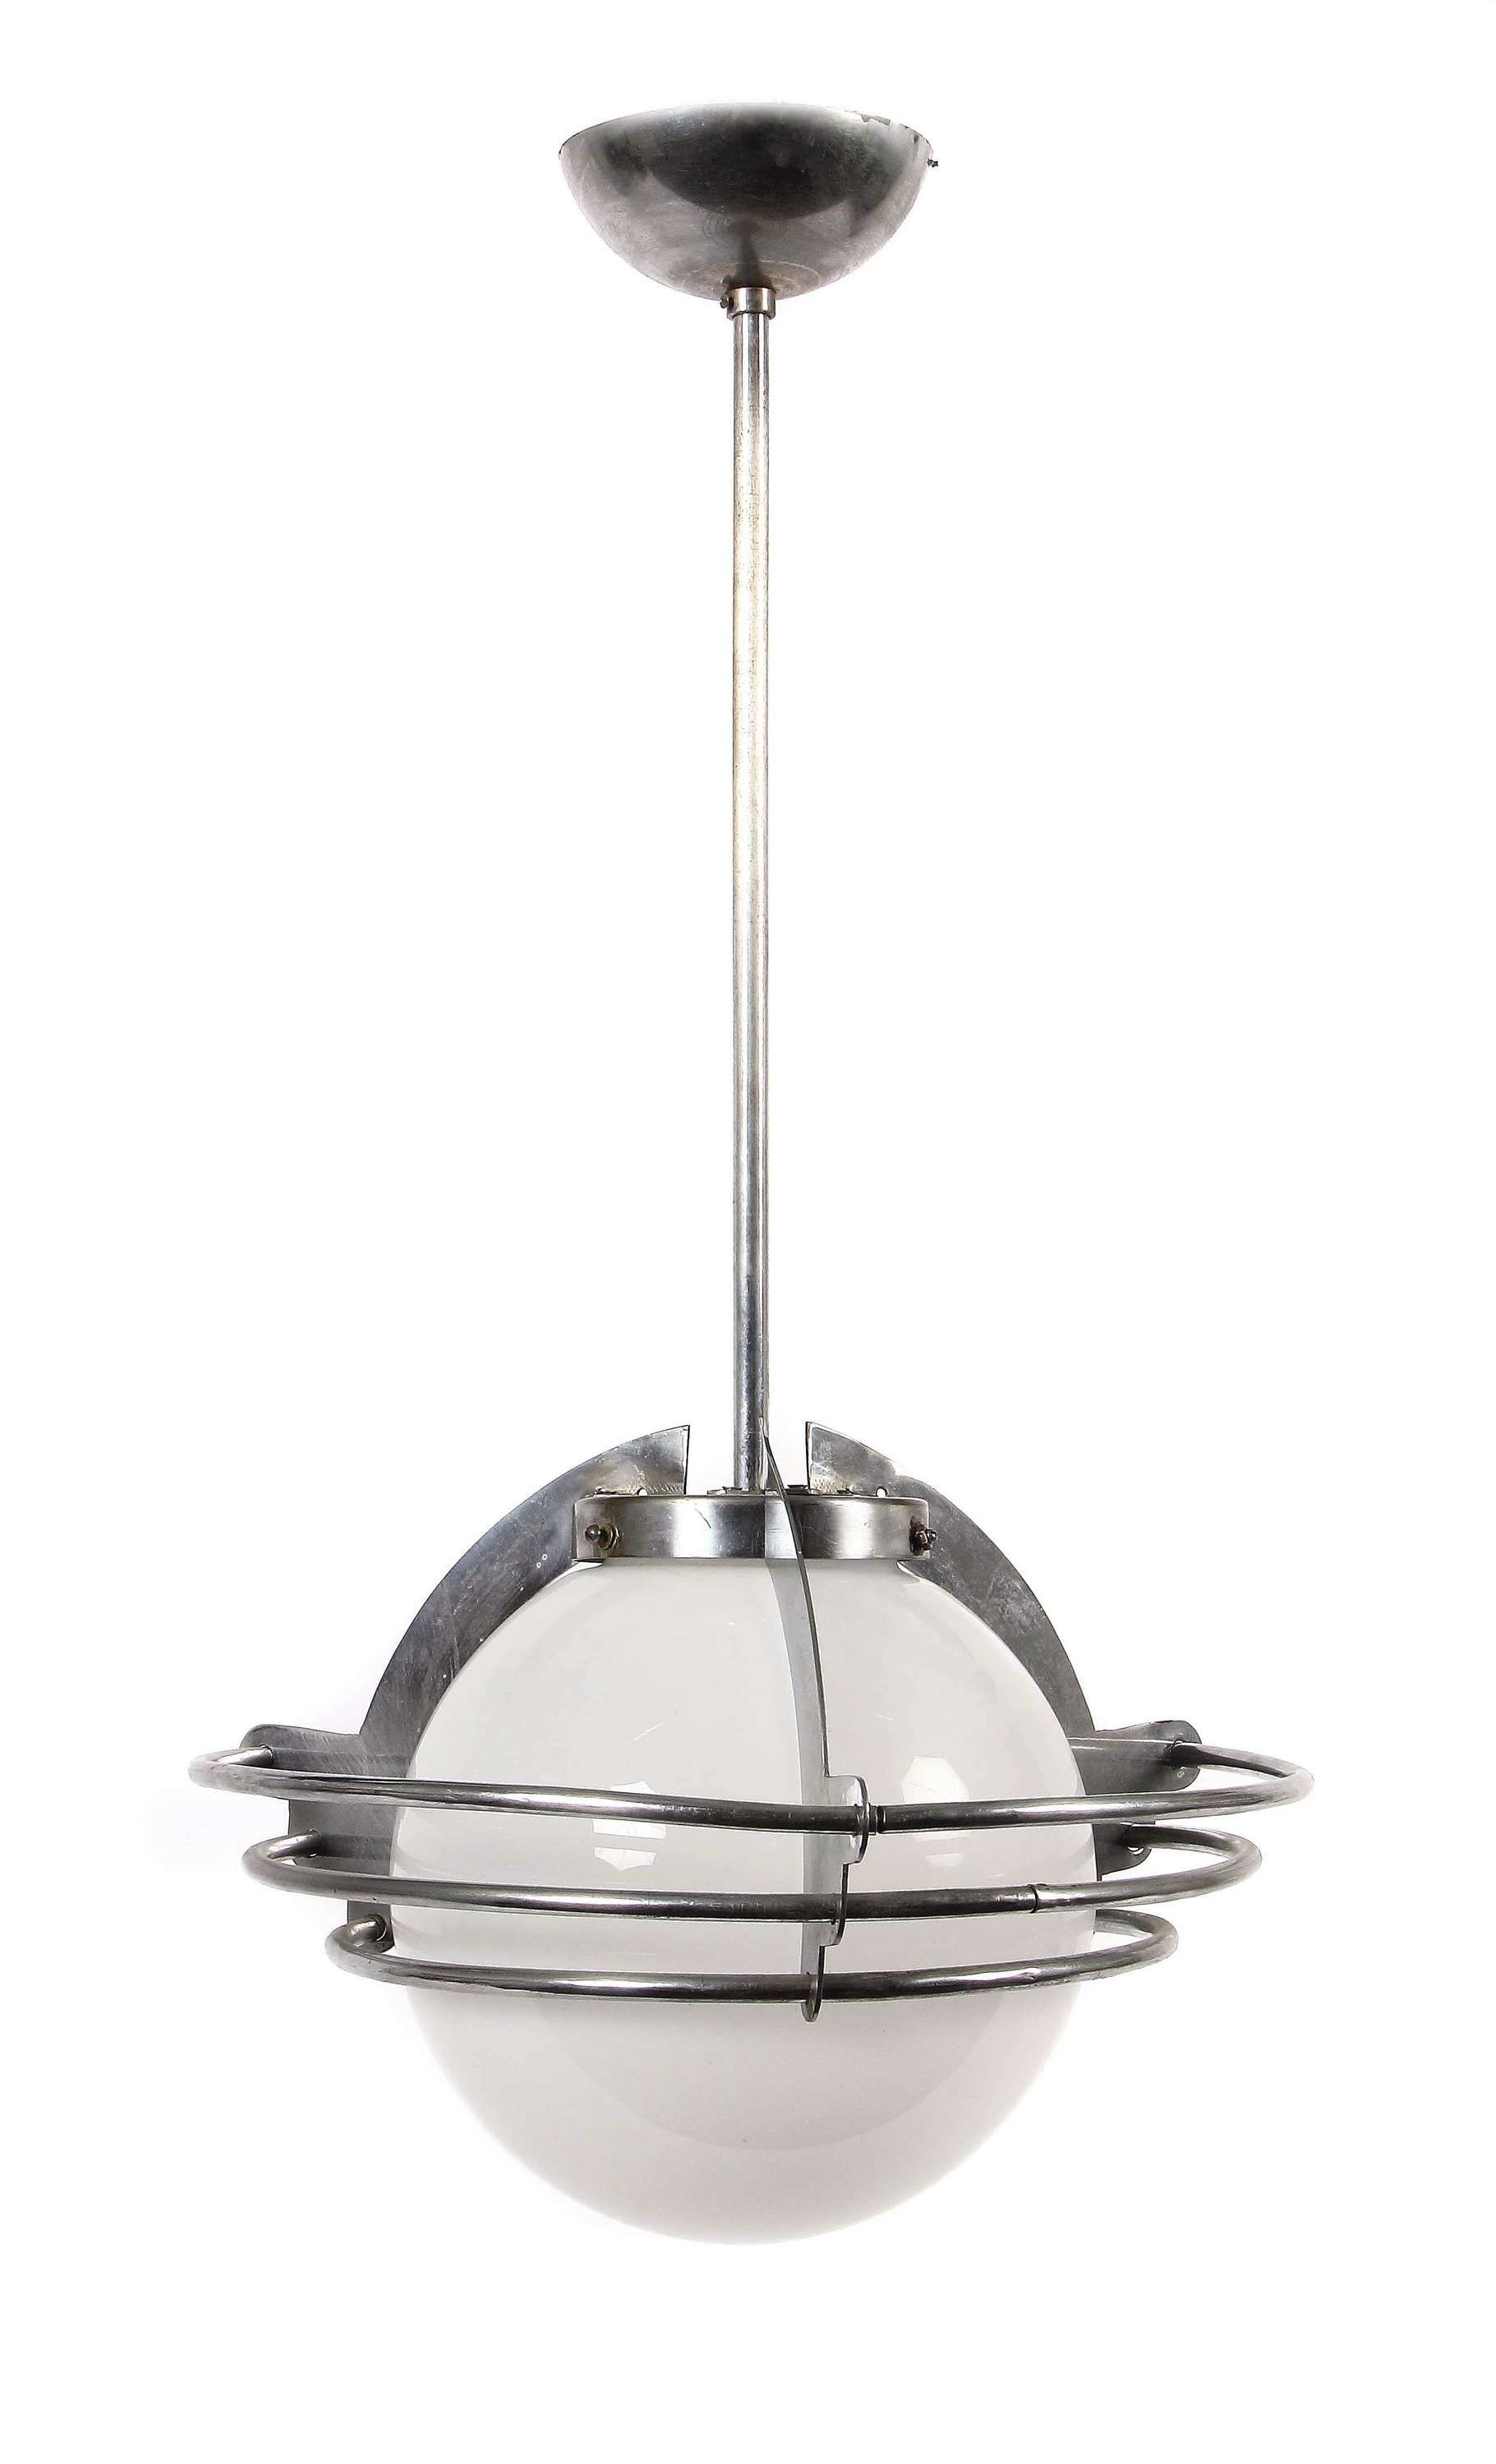 Pendant lamp 1930s, in the way of Saturn, construction of aluminum ...